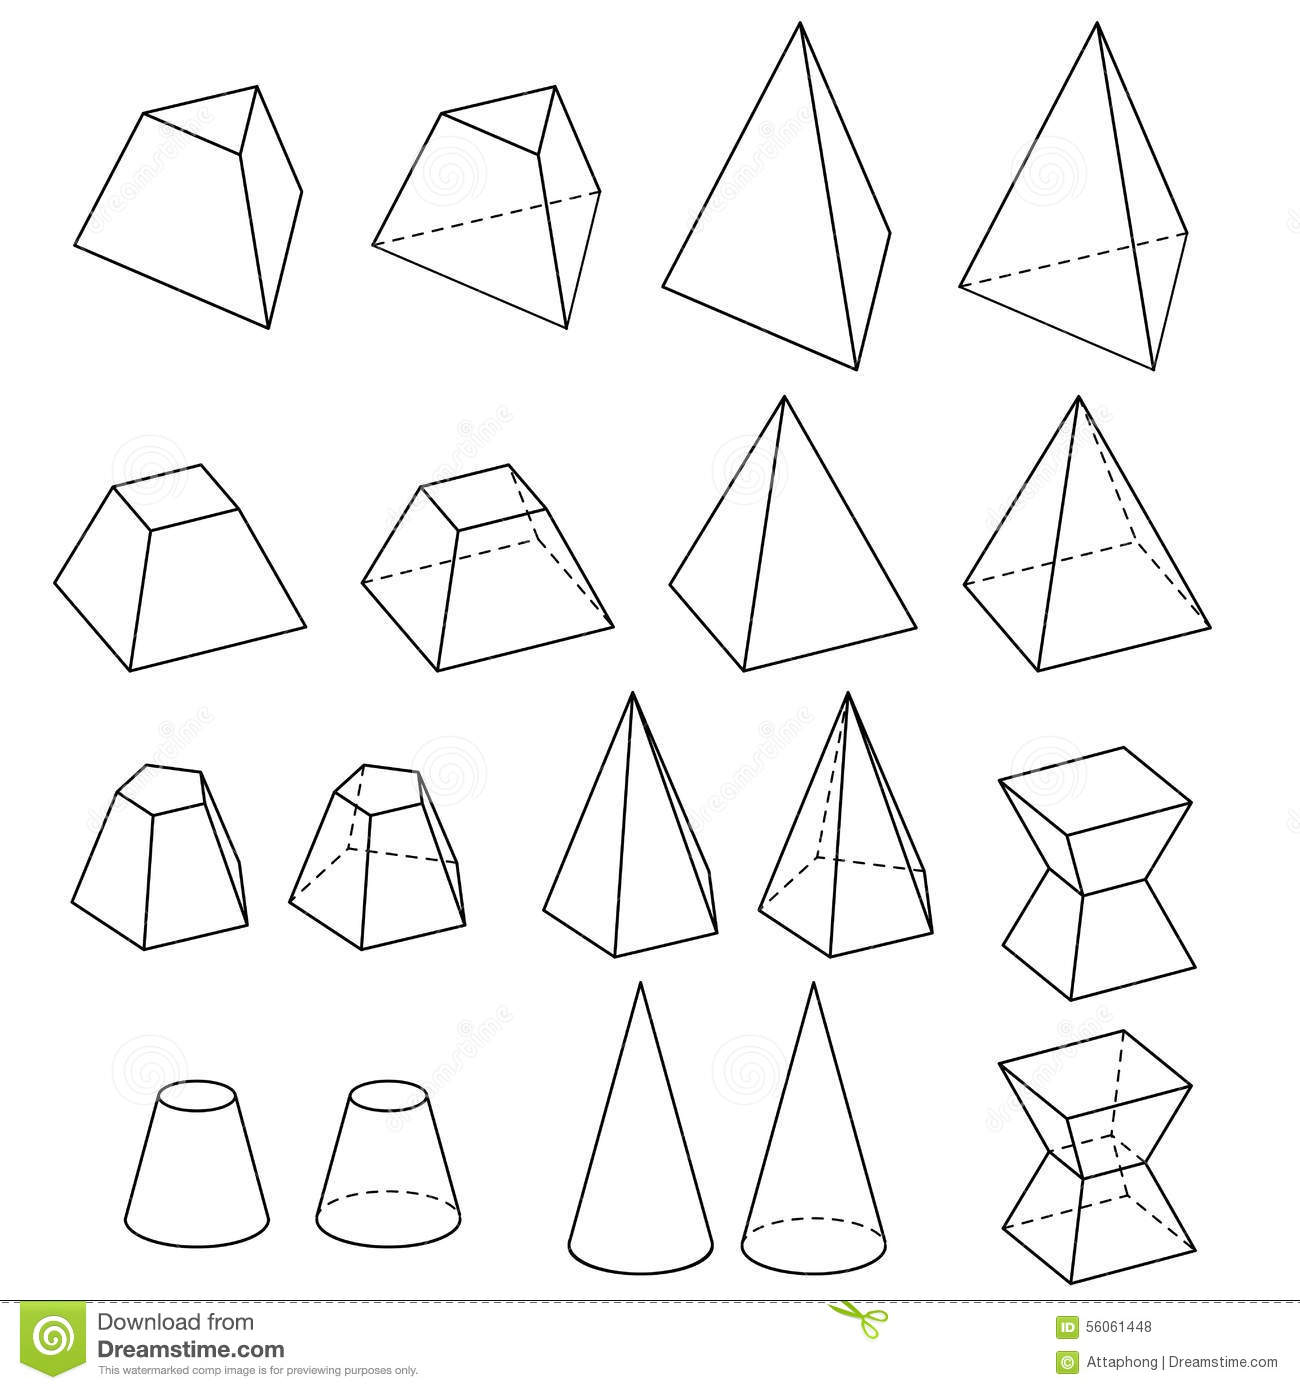 Solid geometry vector stock vector. Illustration of line